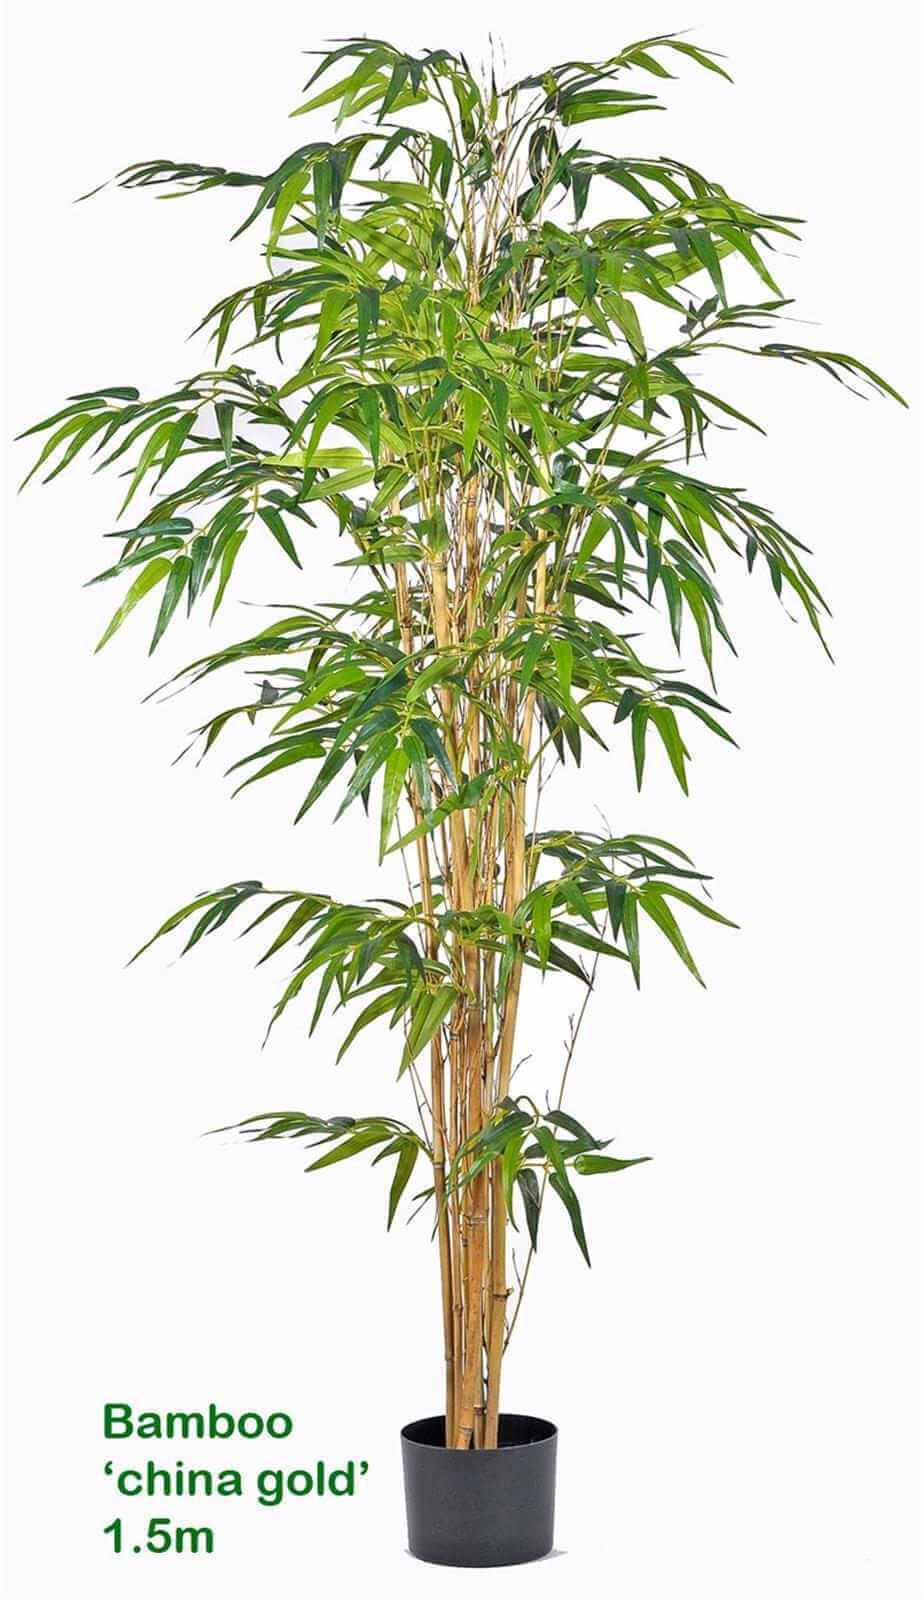 Articial Plants - Bamboo 'china gold' 1.5m